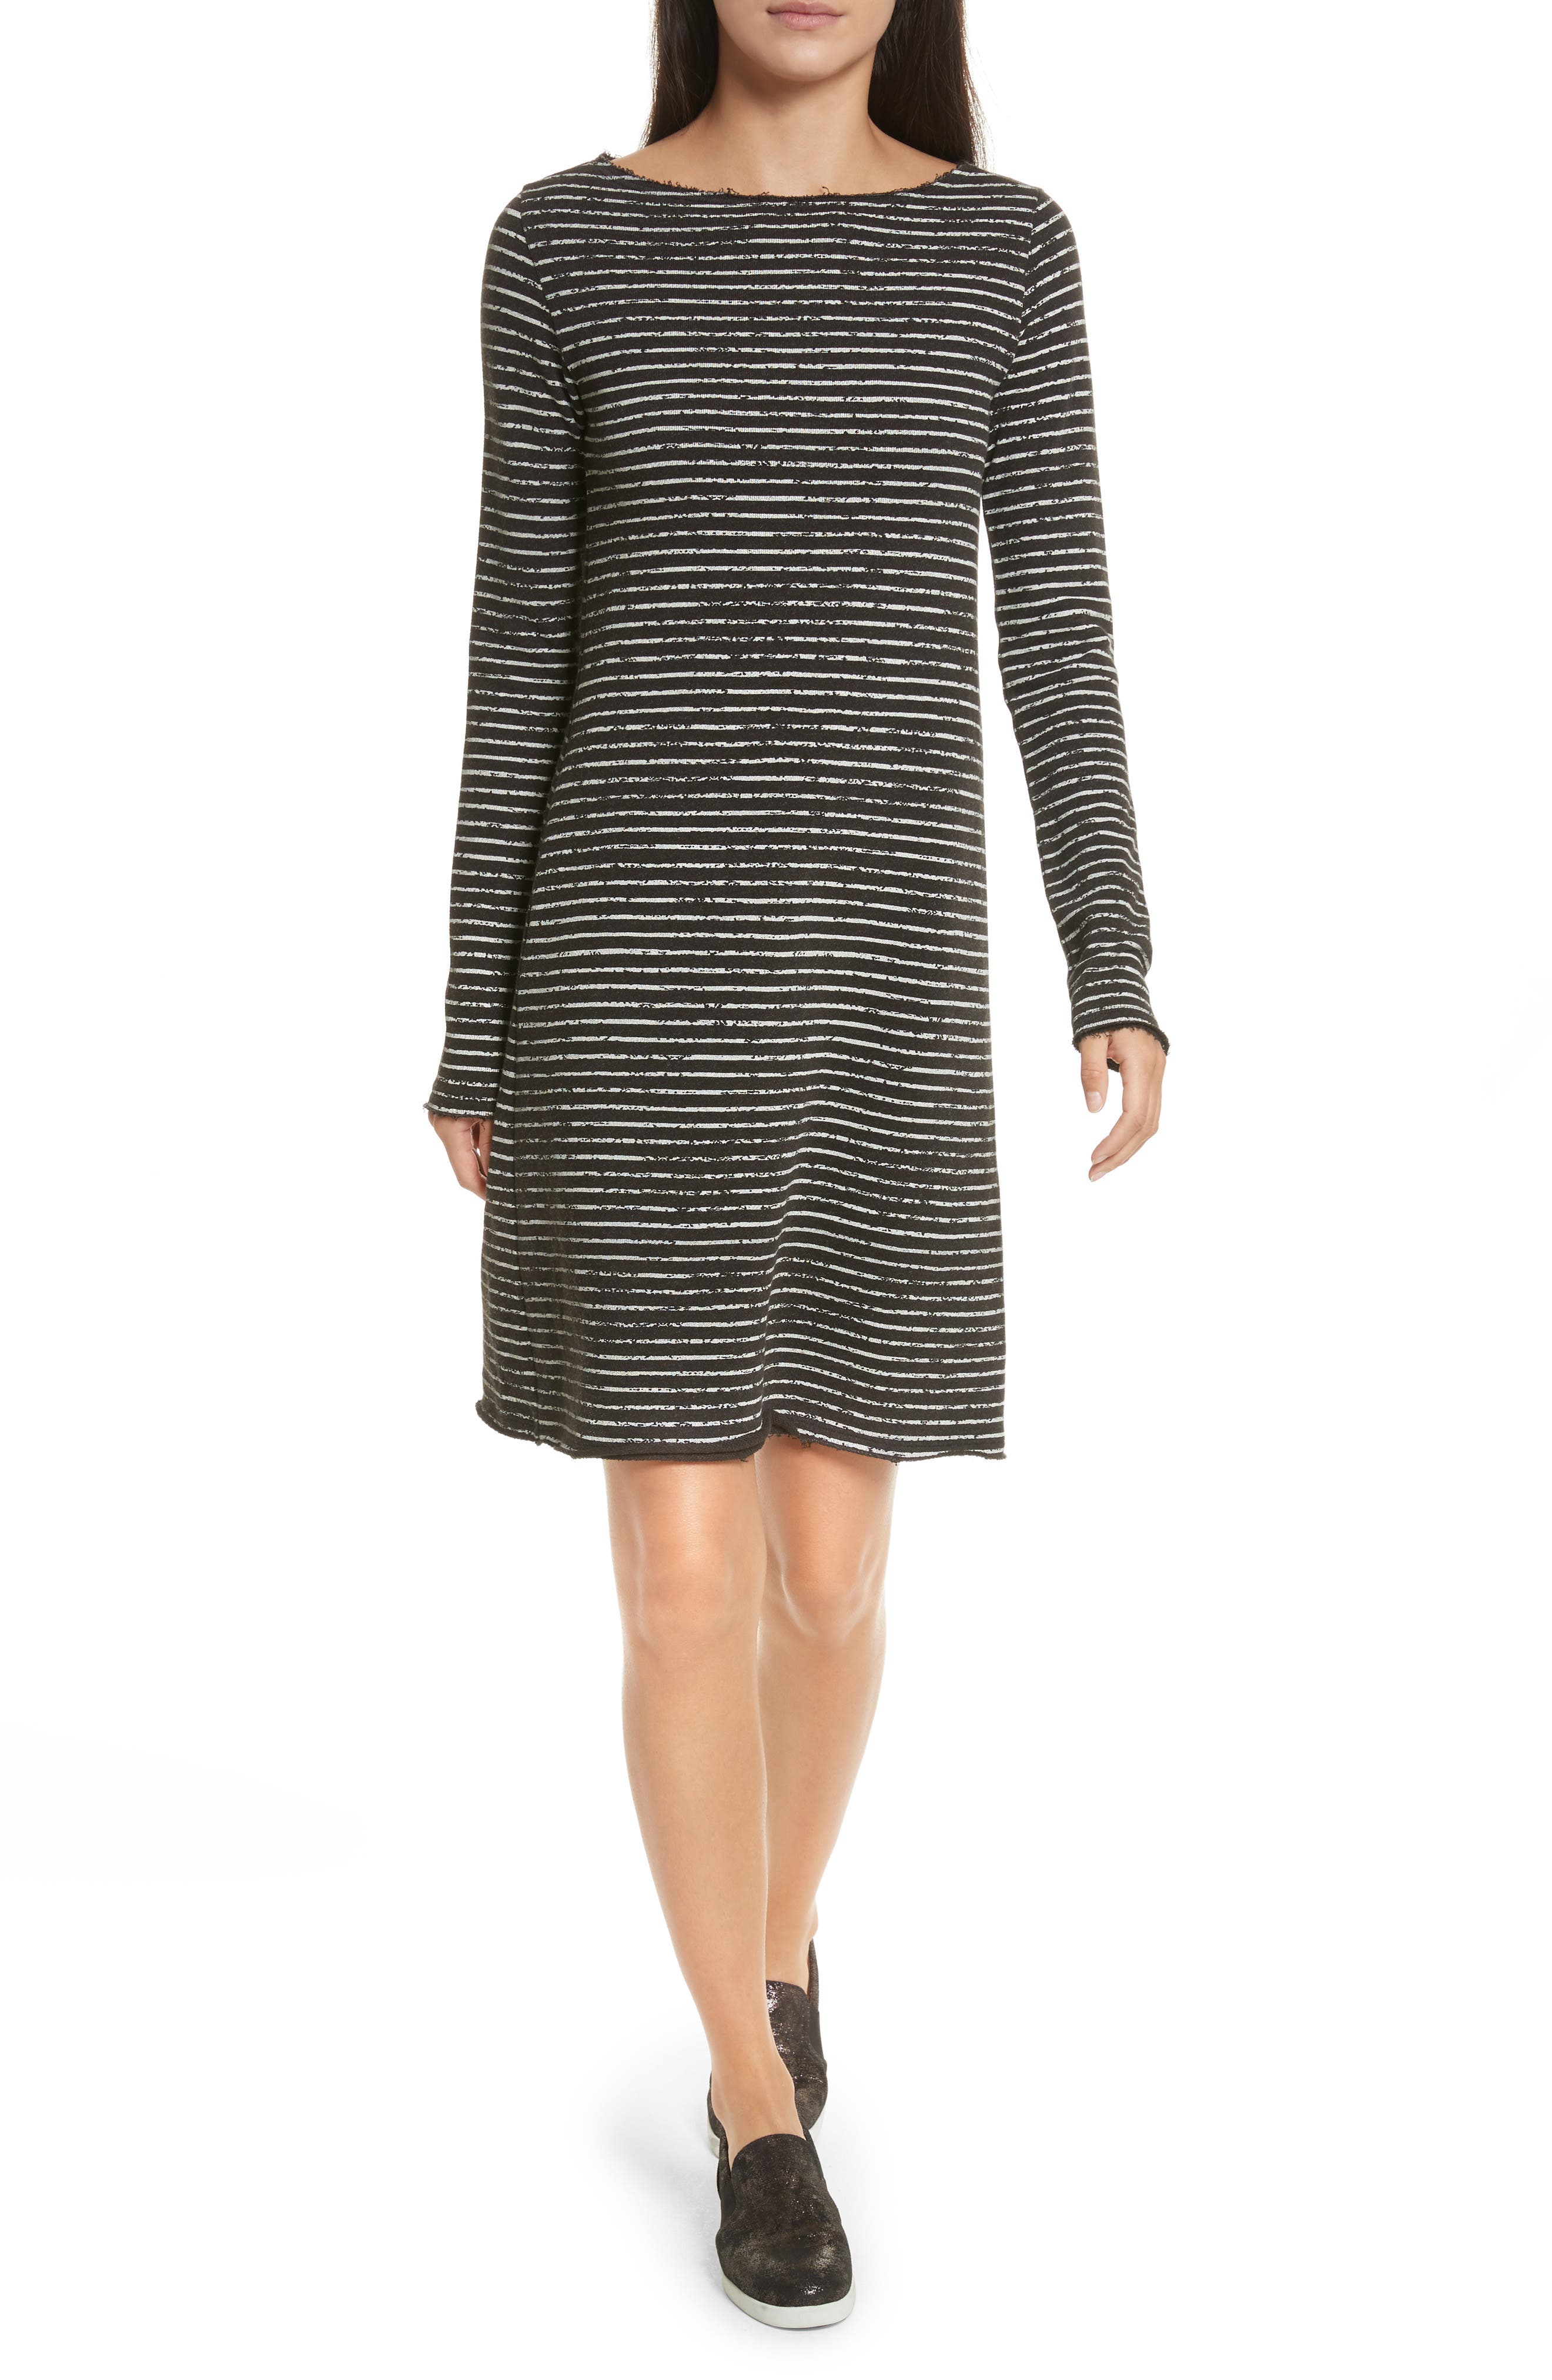 Broken Stripe French Terry Dress,                             Main thumbnail 1, color,                             Charcoal Combo Stripe